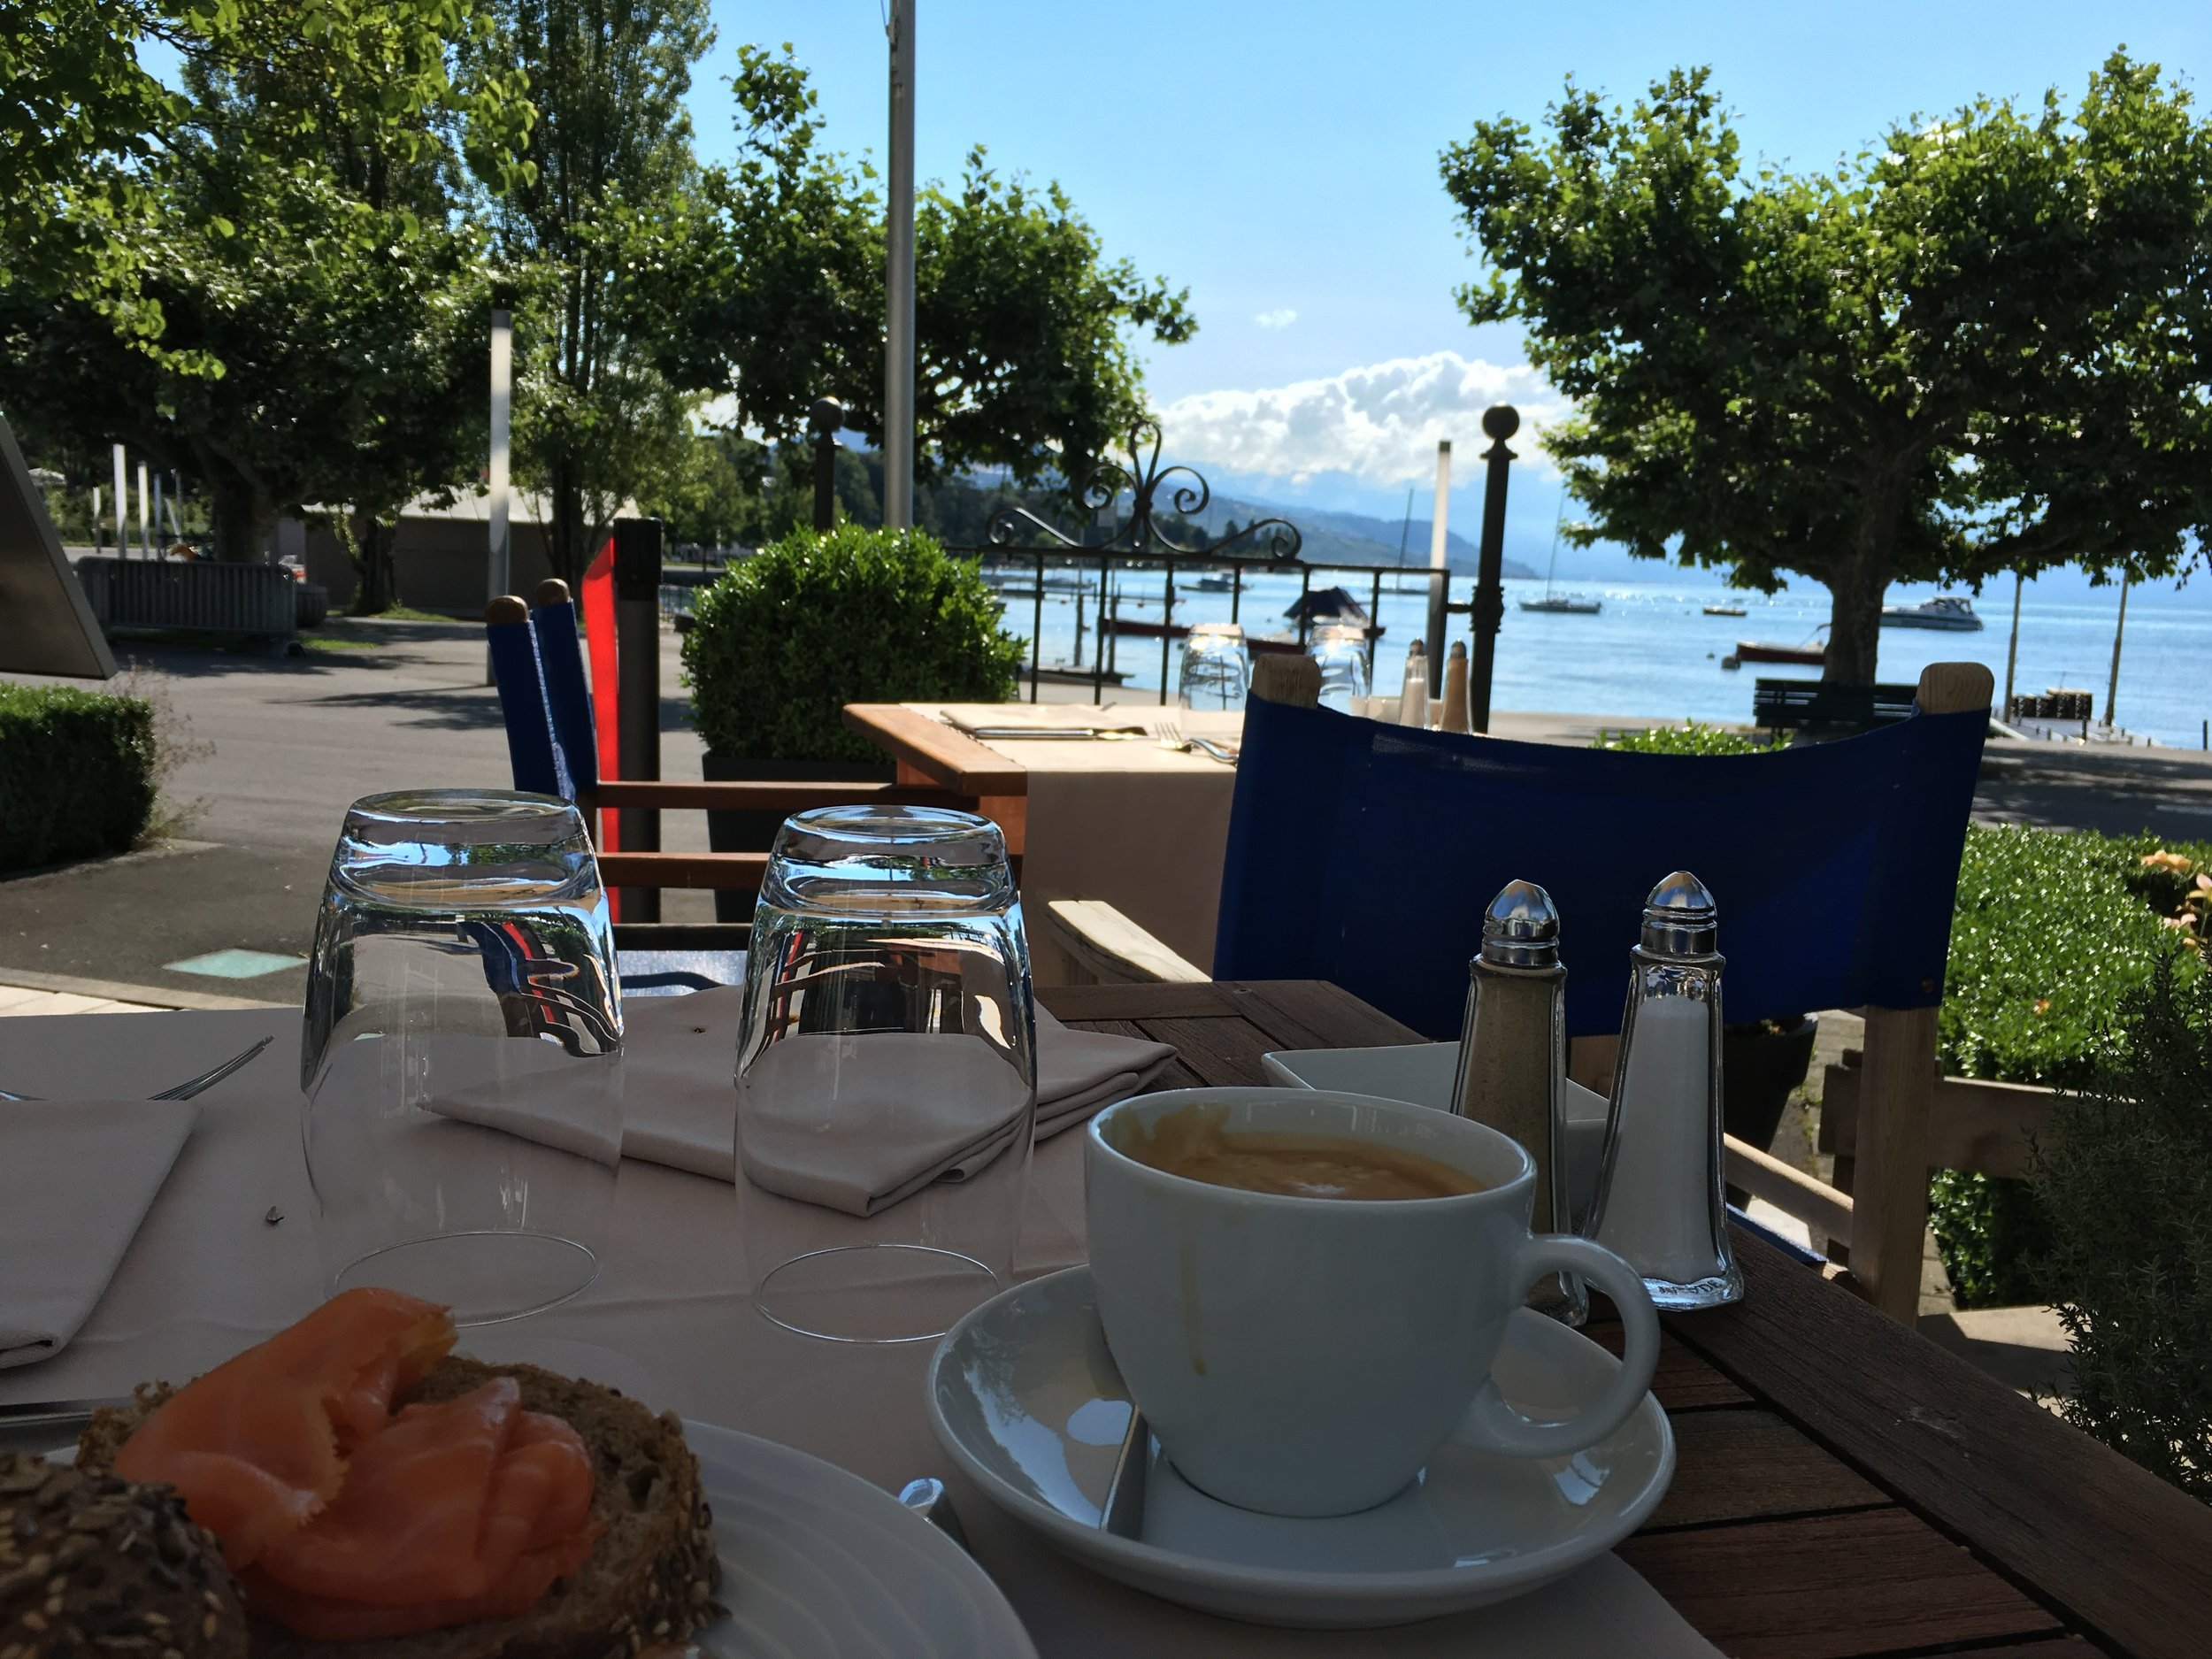 What a nice place to have breakfast